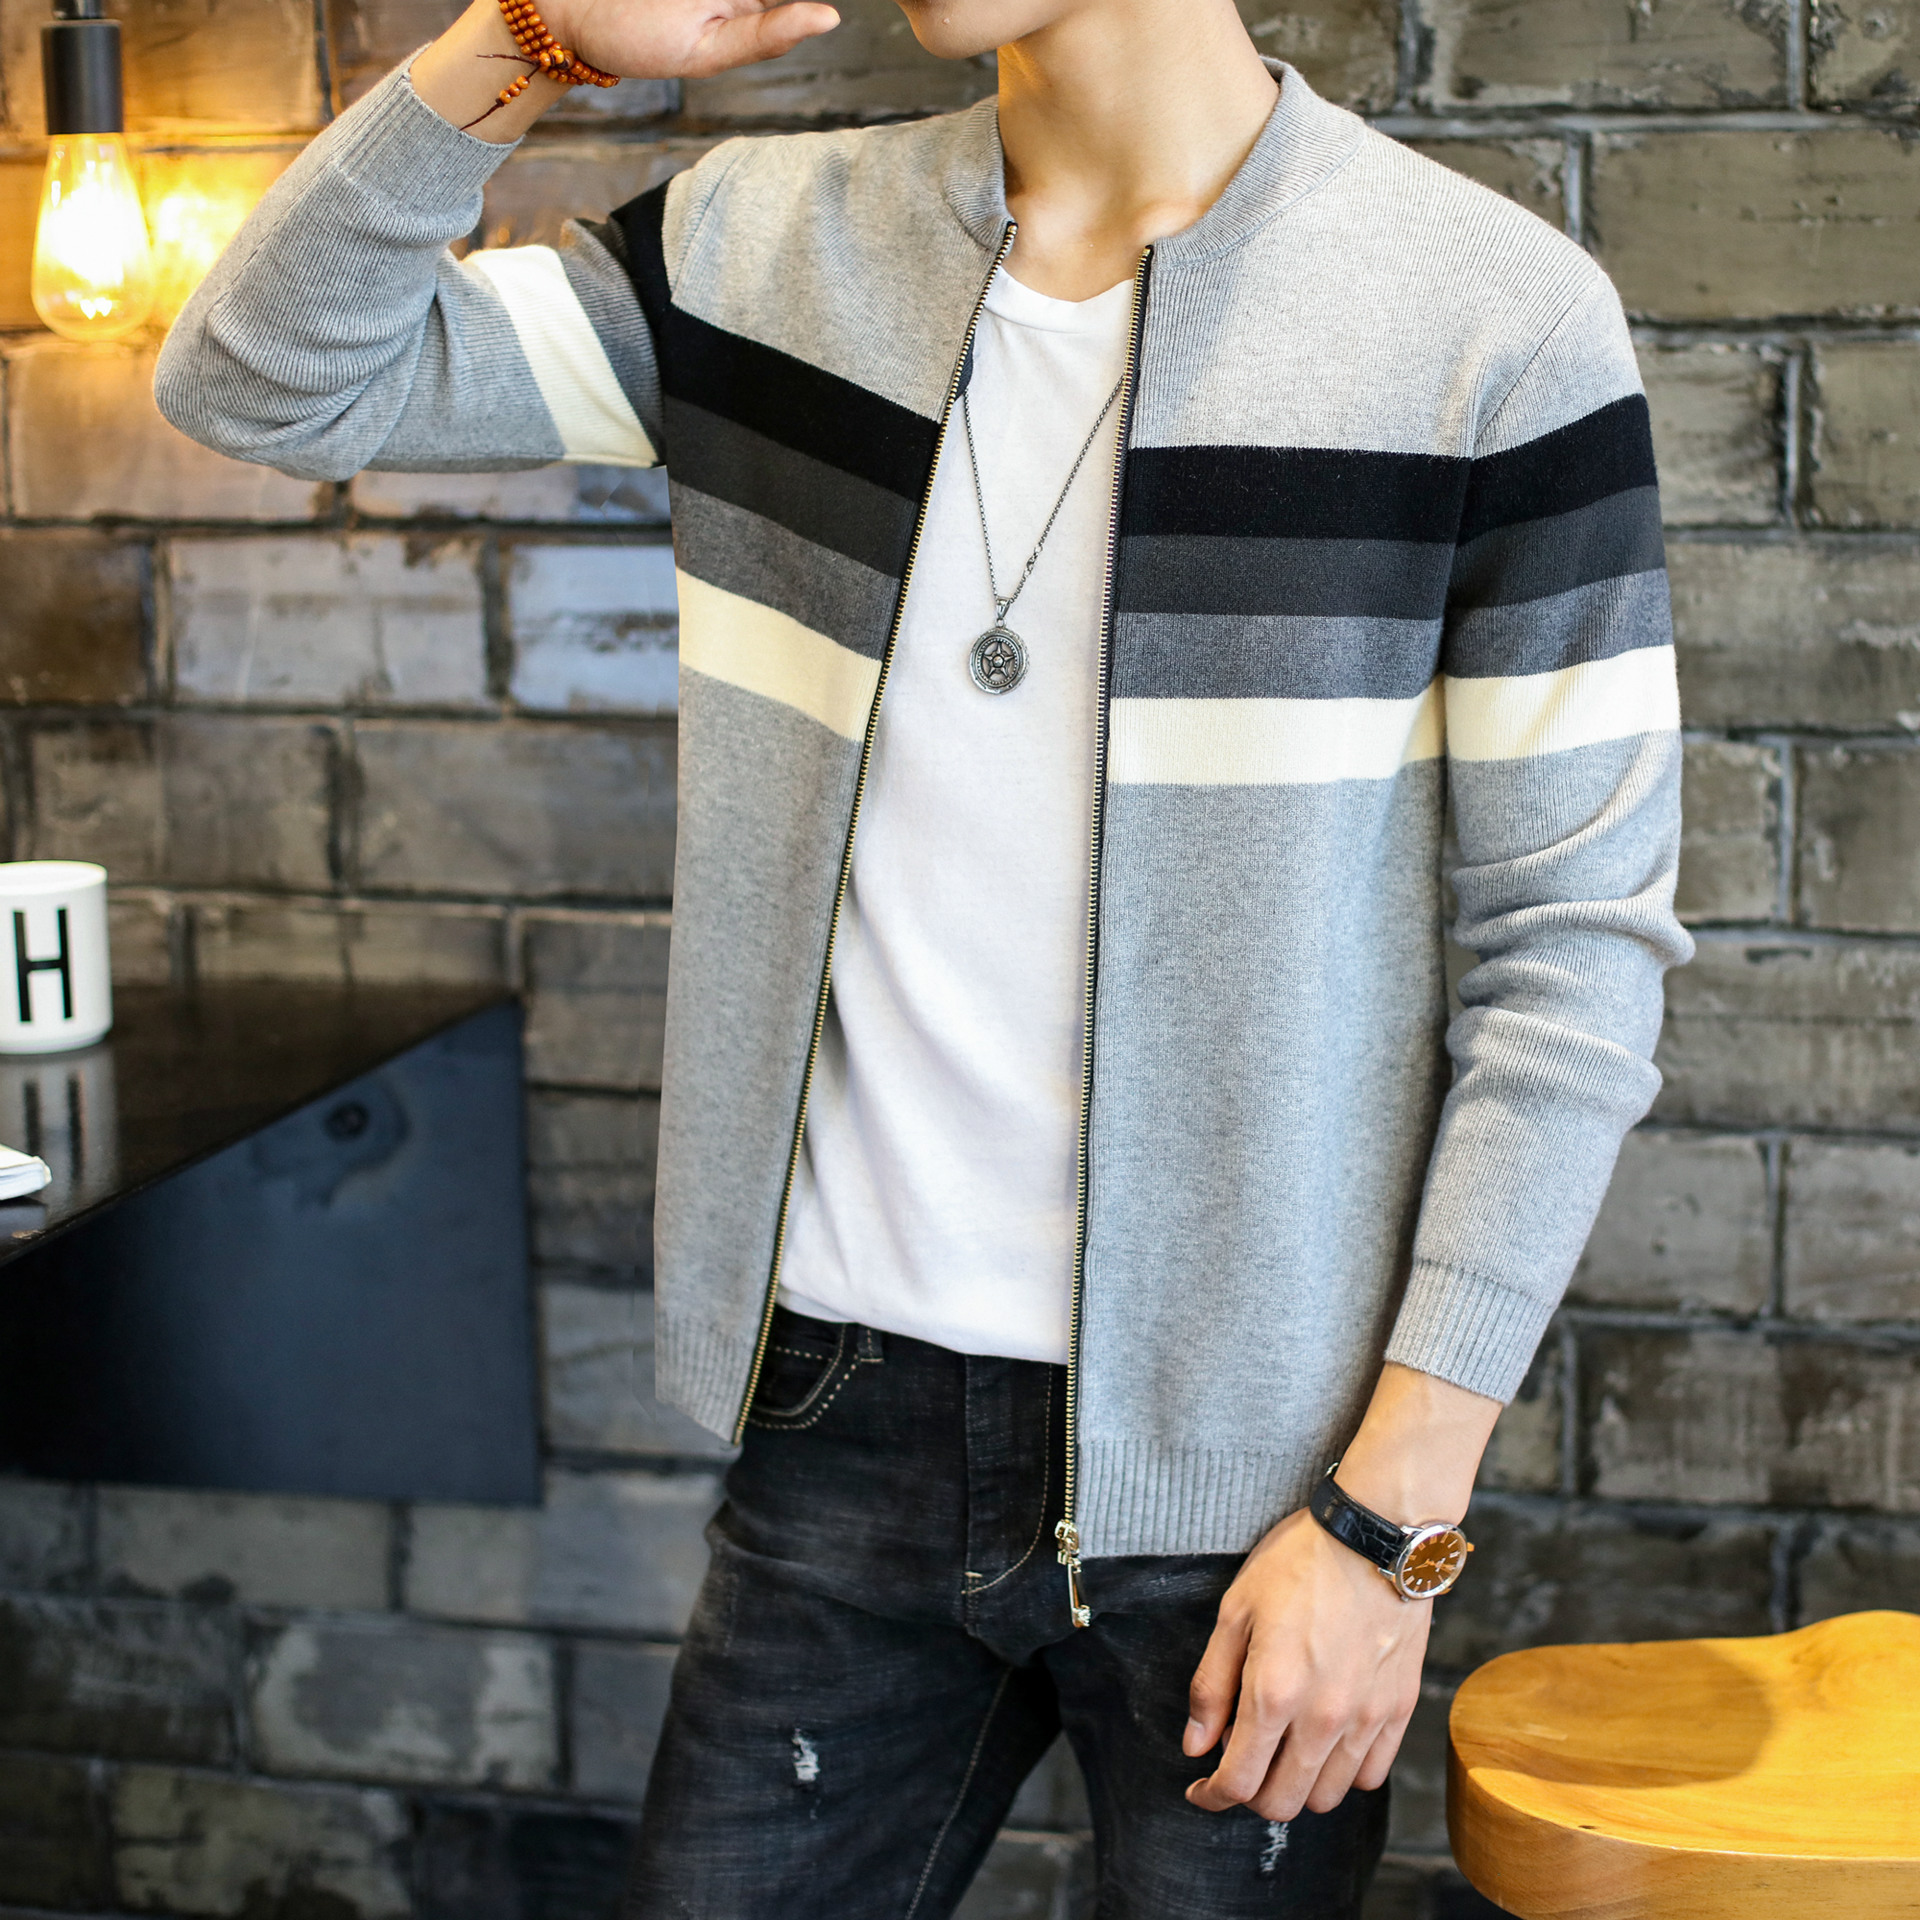 Cheap wholesale 2017 new Autumn Winter Hot selling fashion casual warm nice Sweater X7-171019Z